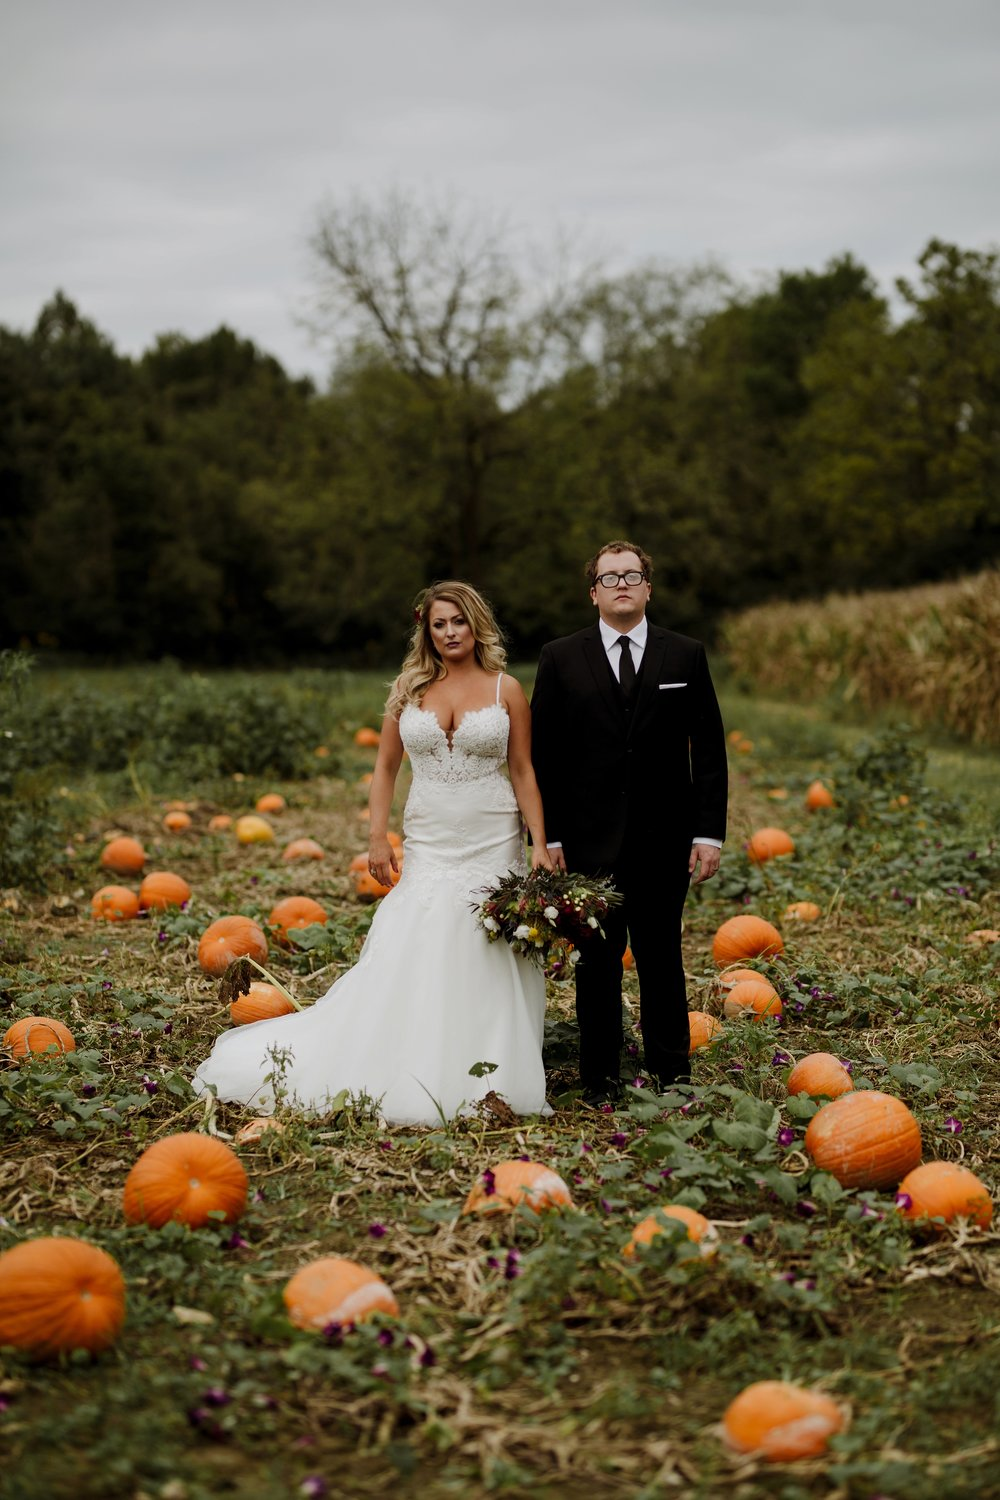 neltners-farm-fall-wedding-photography19.JPG